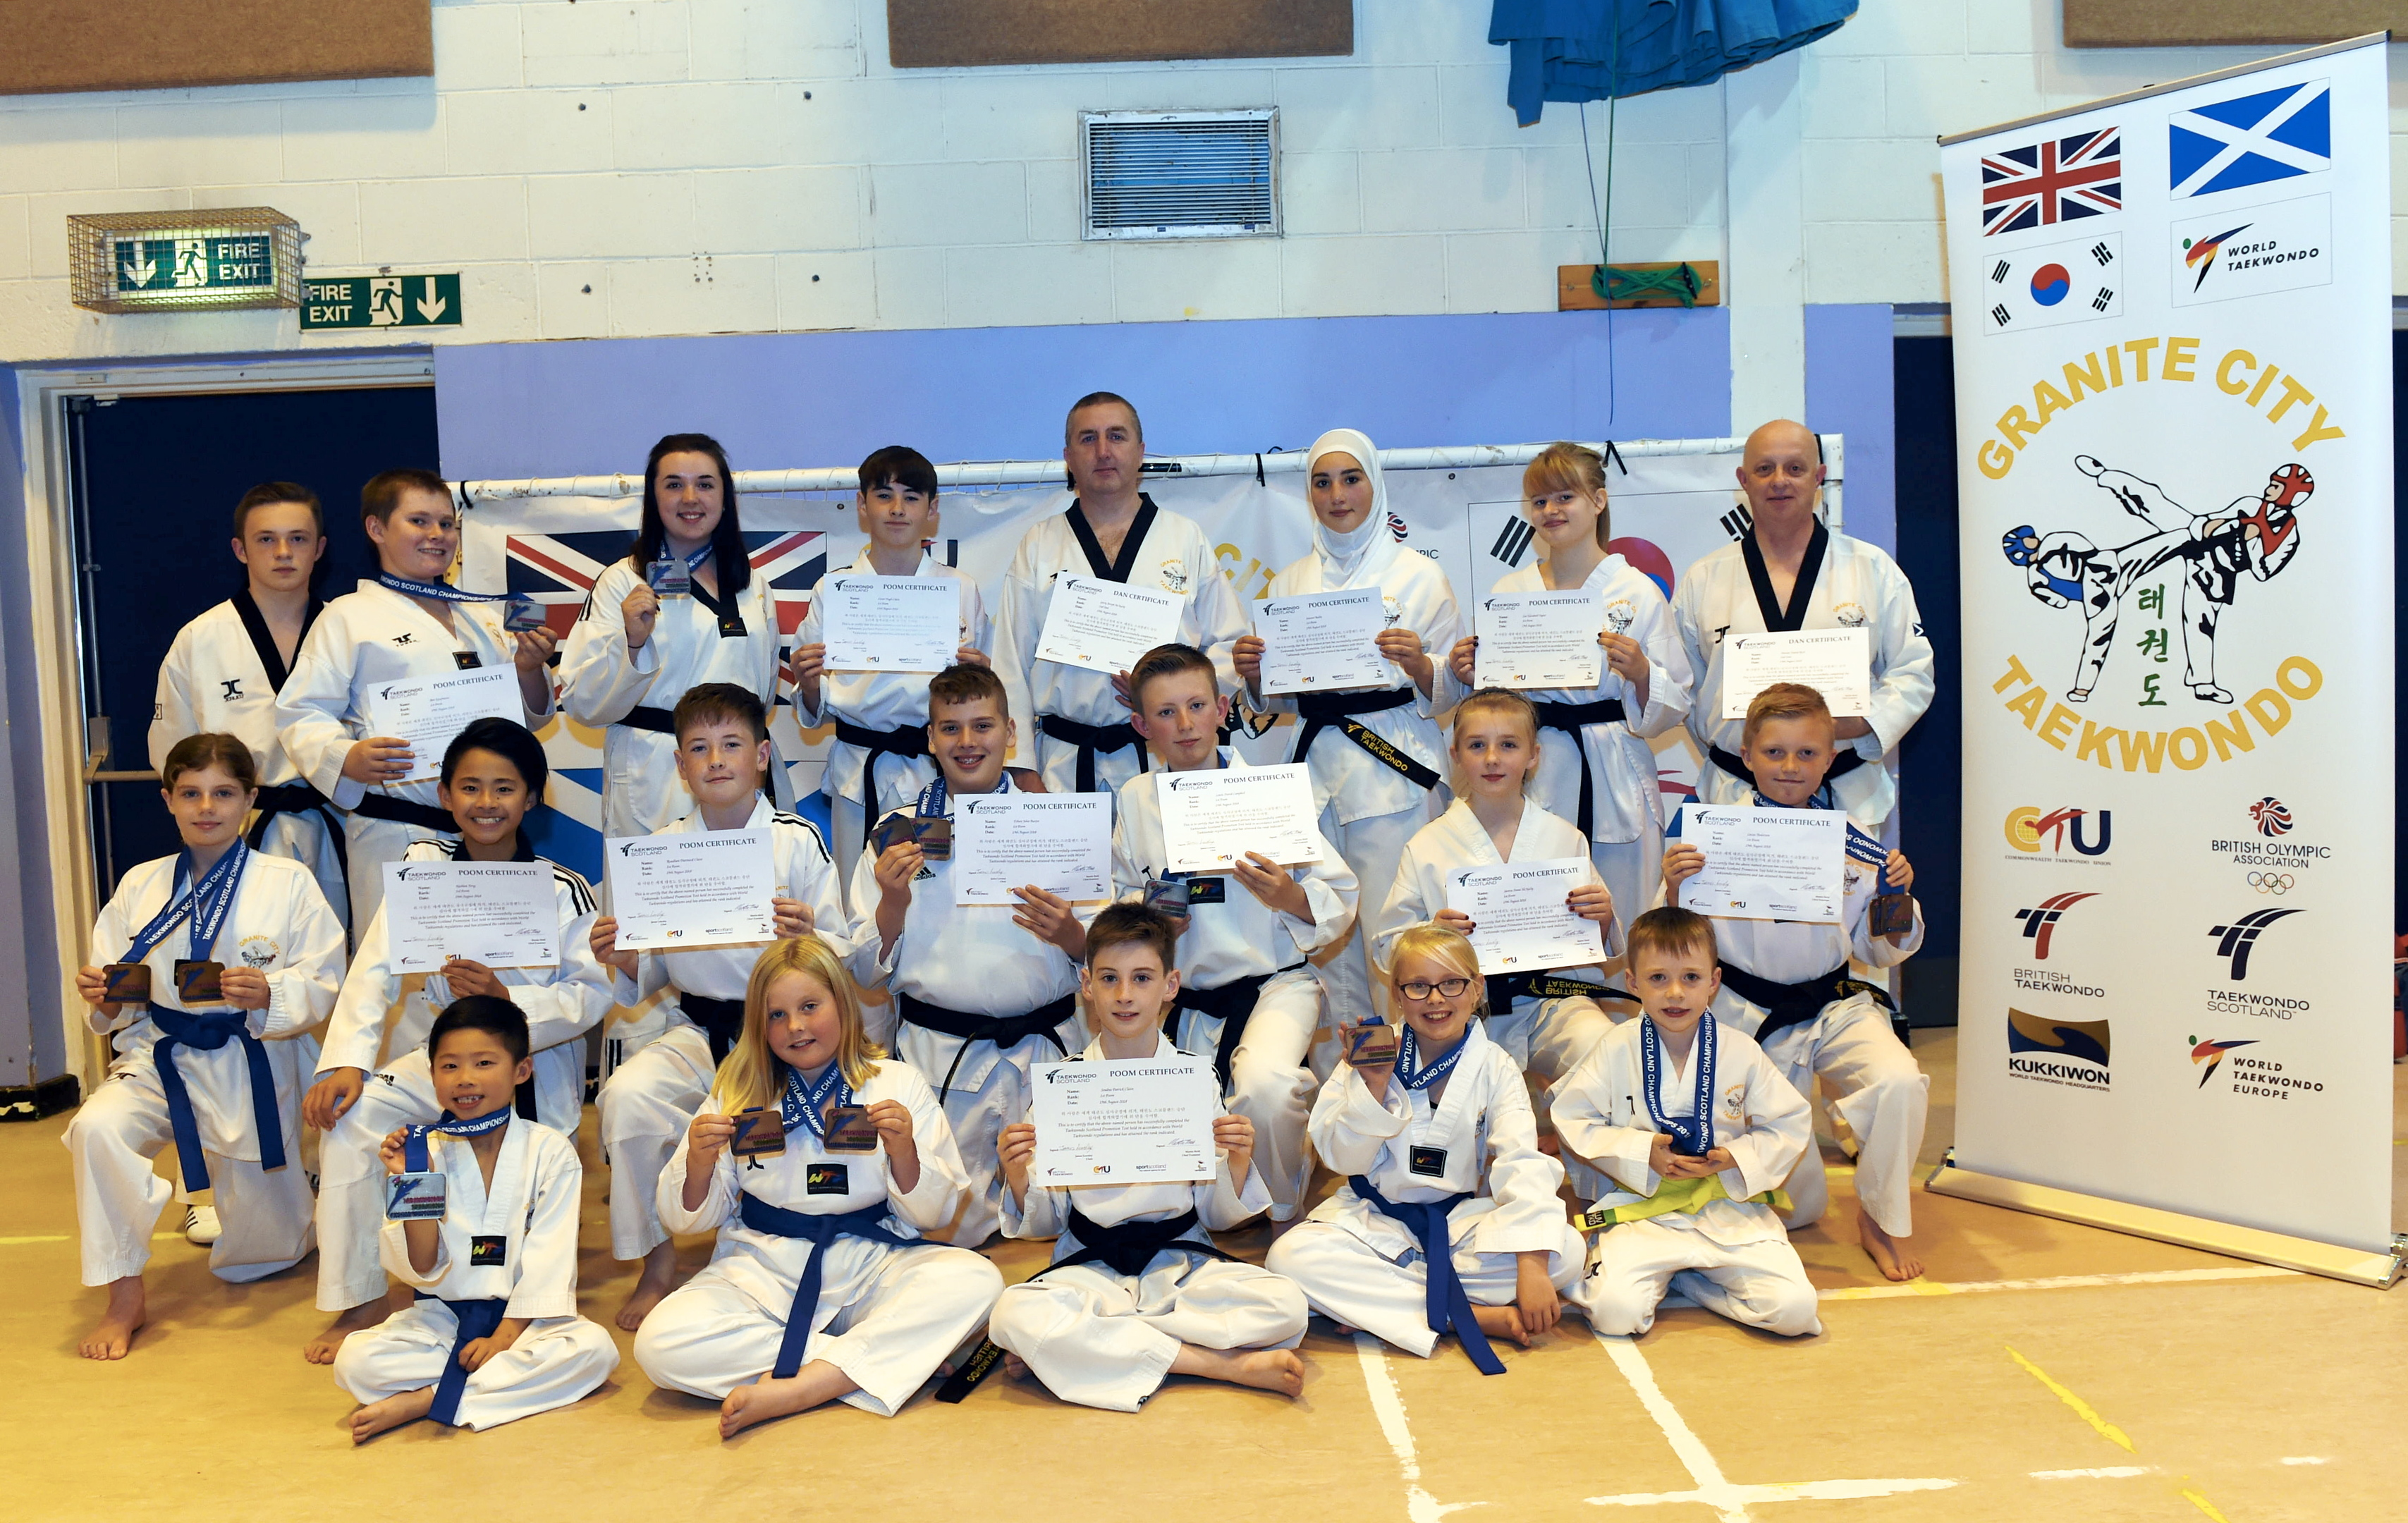 From left, top, assistant coach Aaron Reid; Ben Kaufmann, newly appointed black belt and silver medal for poomsae; assistant coach Shannon McNulty, silver medal in sparring; Conor Claire, newly appointed black belt; assistant coach Garry McNulty, achieved second dan black belt; Sawsan Basha, newly appointed black belt; Zoe Taylor, newly appointed black belt; Ally Reid, achieved second dan black belt  Middle, Louisa Smith, bronze medal for sparring and bronze medal for poomsae; Nathan Fong, achieved third Poom junior black belt; Ruadhan Claire, newly appointed black belt; Ethan Baxter, newly appointed black belt, silver medal for poomsae and silver for sparring; Lewis Campbell, newly appointed black belt and silver medal for poomsae; Saoirse McNulty, newly appointed black belt; Lucas Anderson, newly appointed black belt and bronze medal for poomsae  Bottom, Kayden Fong, silver medal for sparring; Anna-Mae Smith, bronze medal for poomsae and bronze medal for sparring; Seadna Claire, newly appointed black belt; Christina Stuart, bronze medal for poomsae; Ethan Thomson, bronze medal for sparring